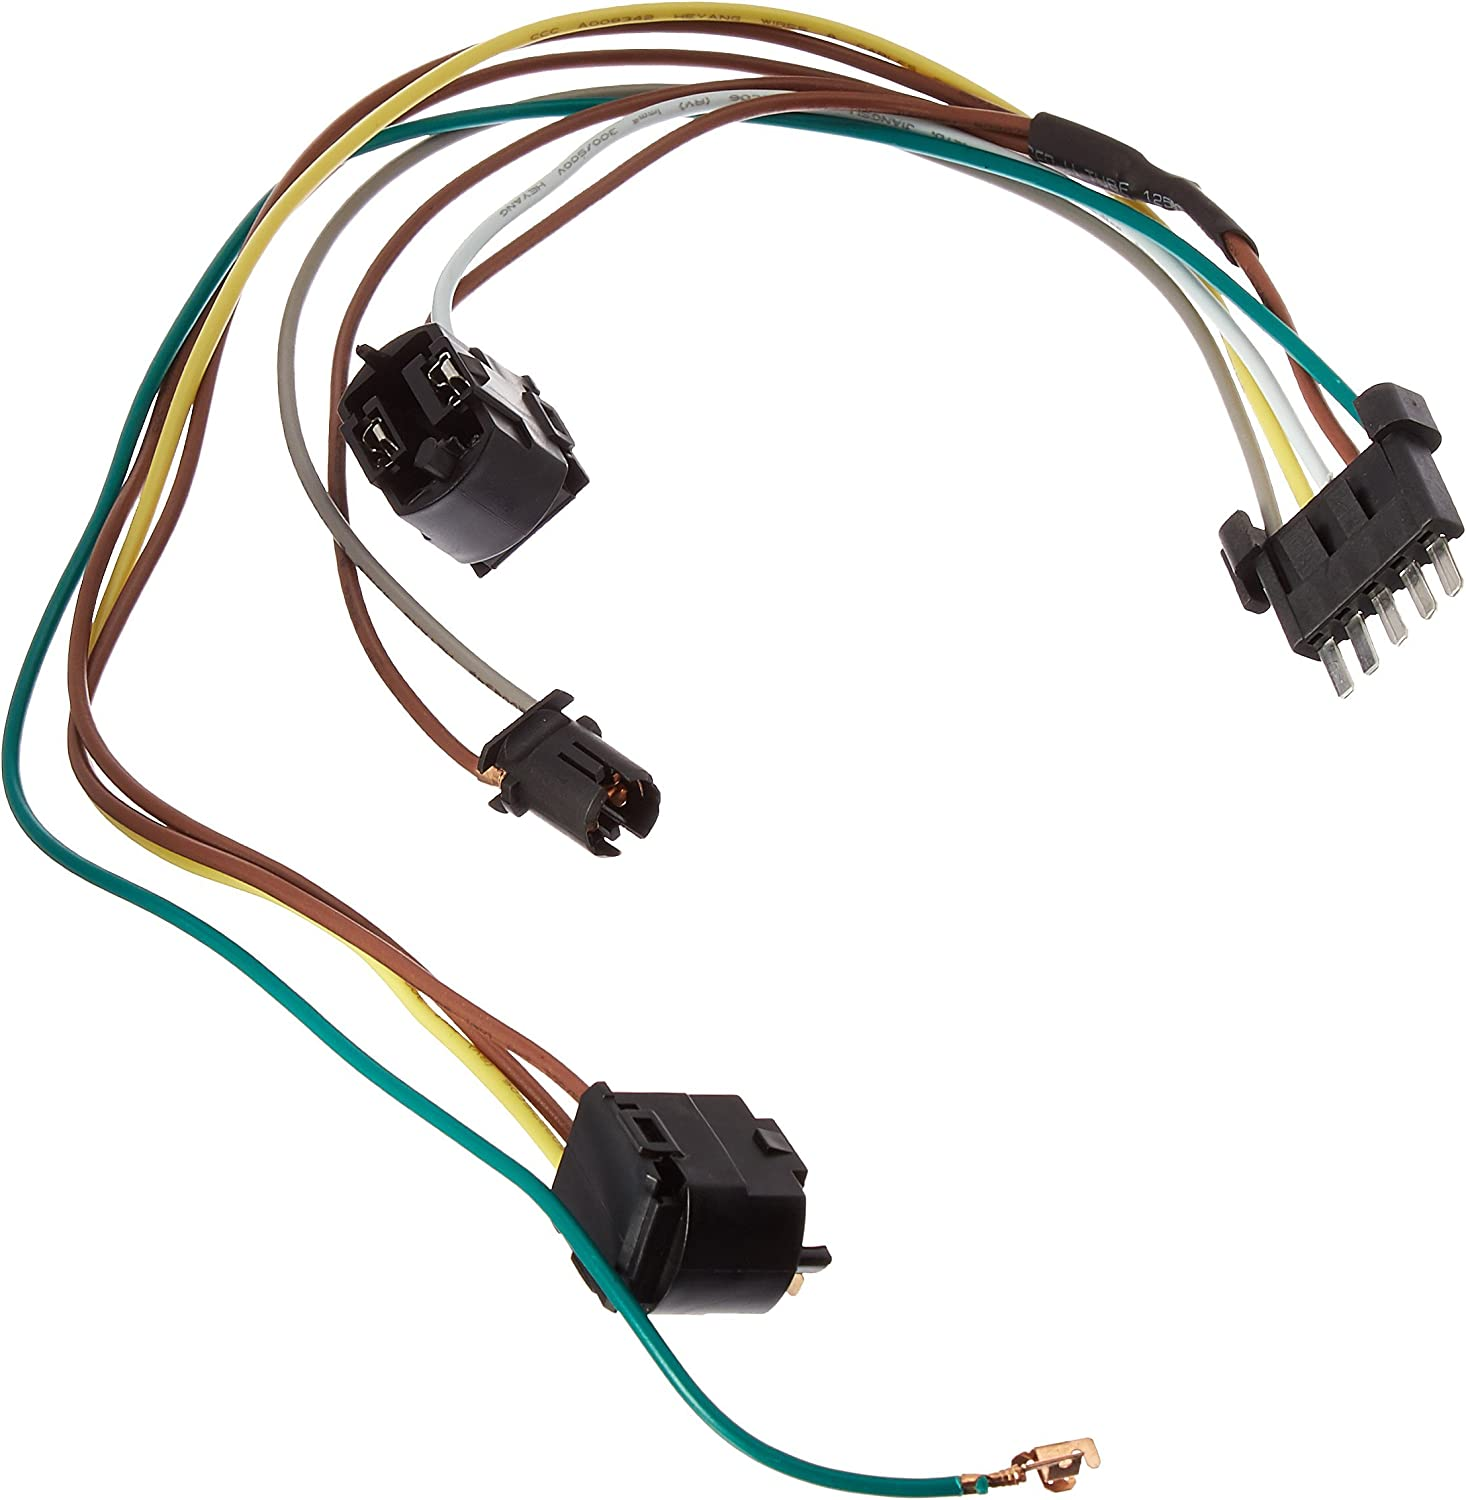 benz c32 engine wiring harness amazon com motorking dc109 02 07 mecedes left or right headlight  amazon com motorking dc109 02 07